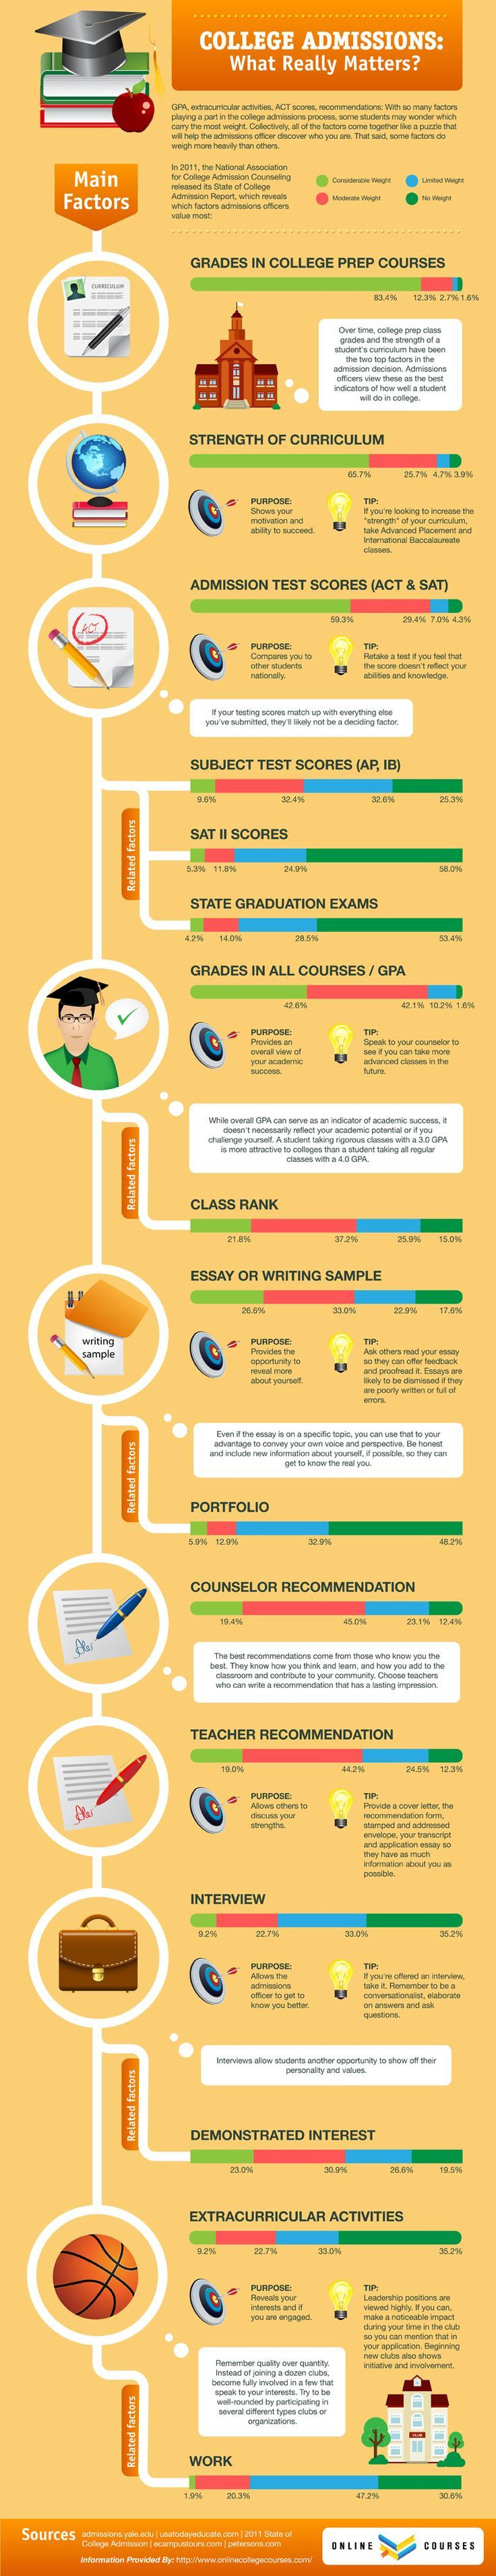 best ideas about good essay how to write essay 30 good student class president slogans